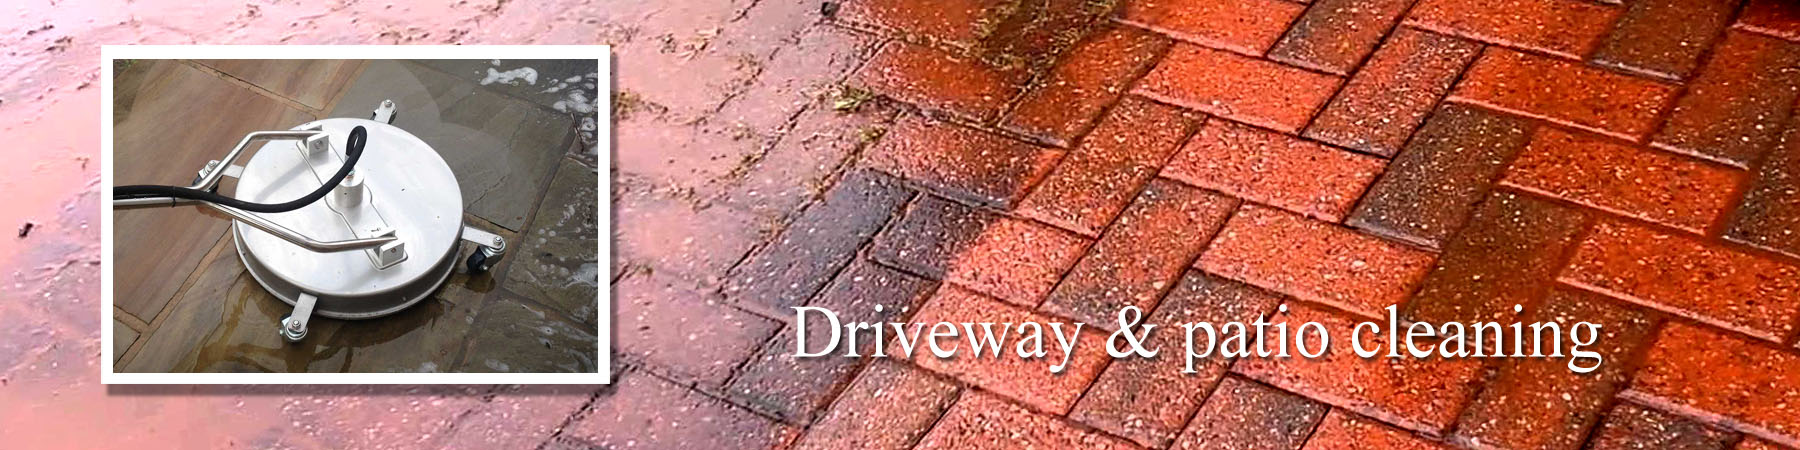 J.R. Driveway & Patio Cleaning High Hurstwood J R Cleaning